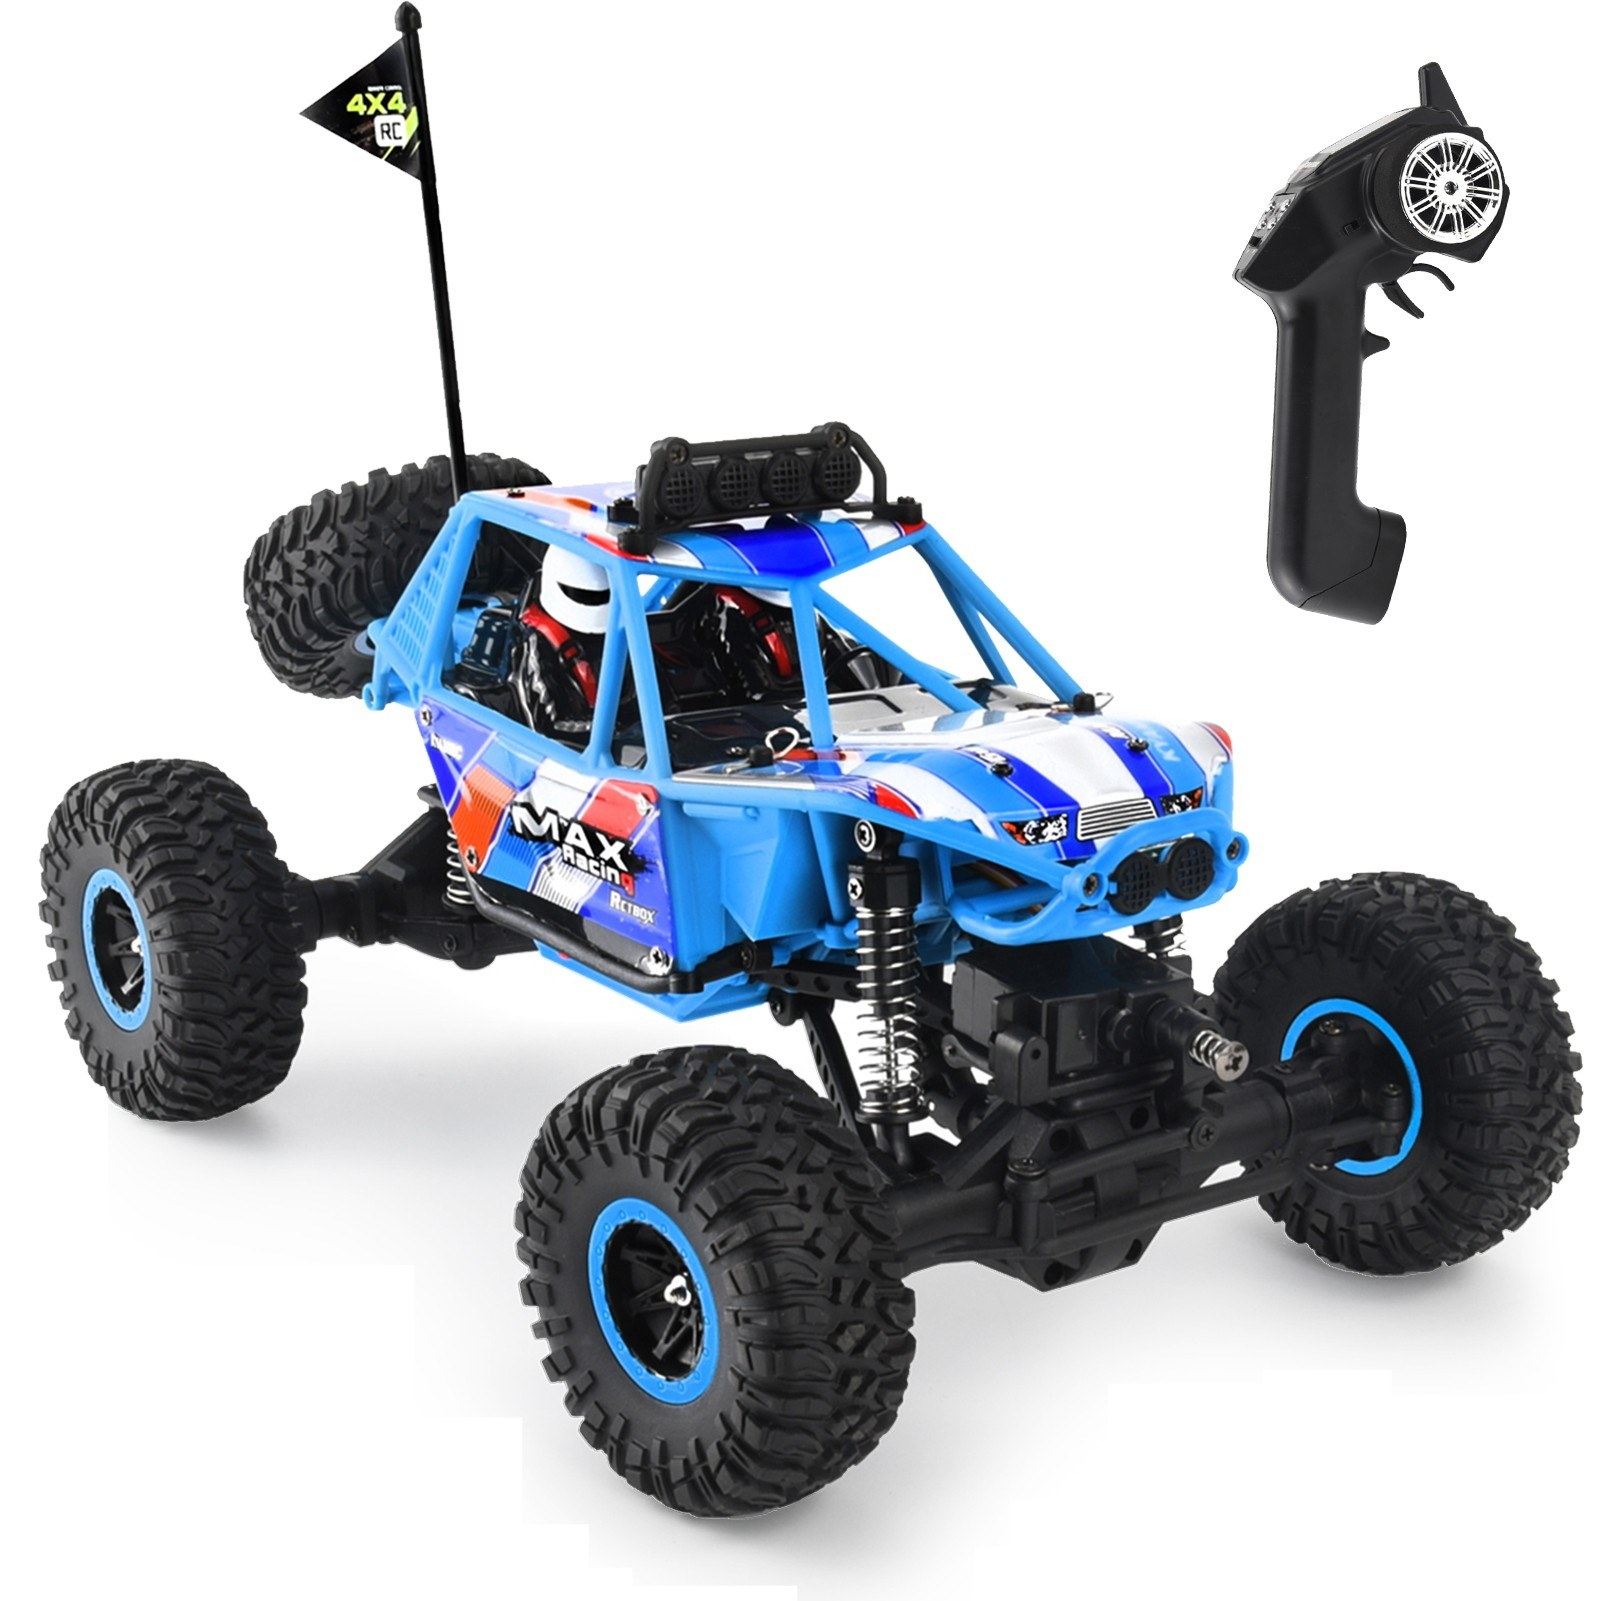 cafago.com - 58% OFF KY-2816A RC Car 2.4Ghz 1:16 4WD Racing Climbing Vehicle Off Road RC Trucks,free shipping+$70.66